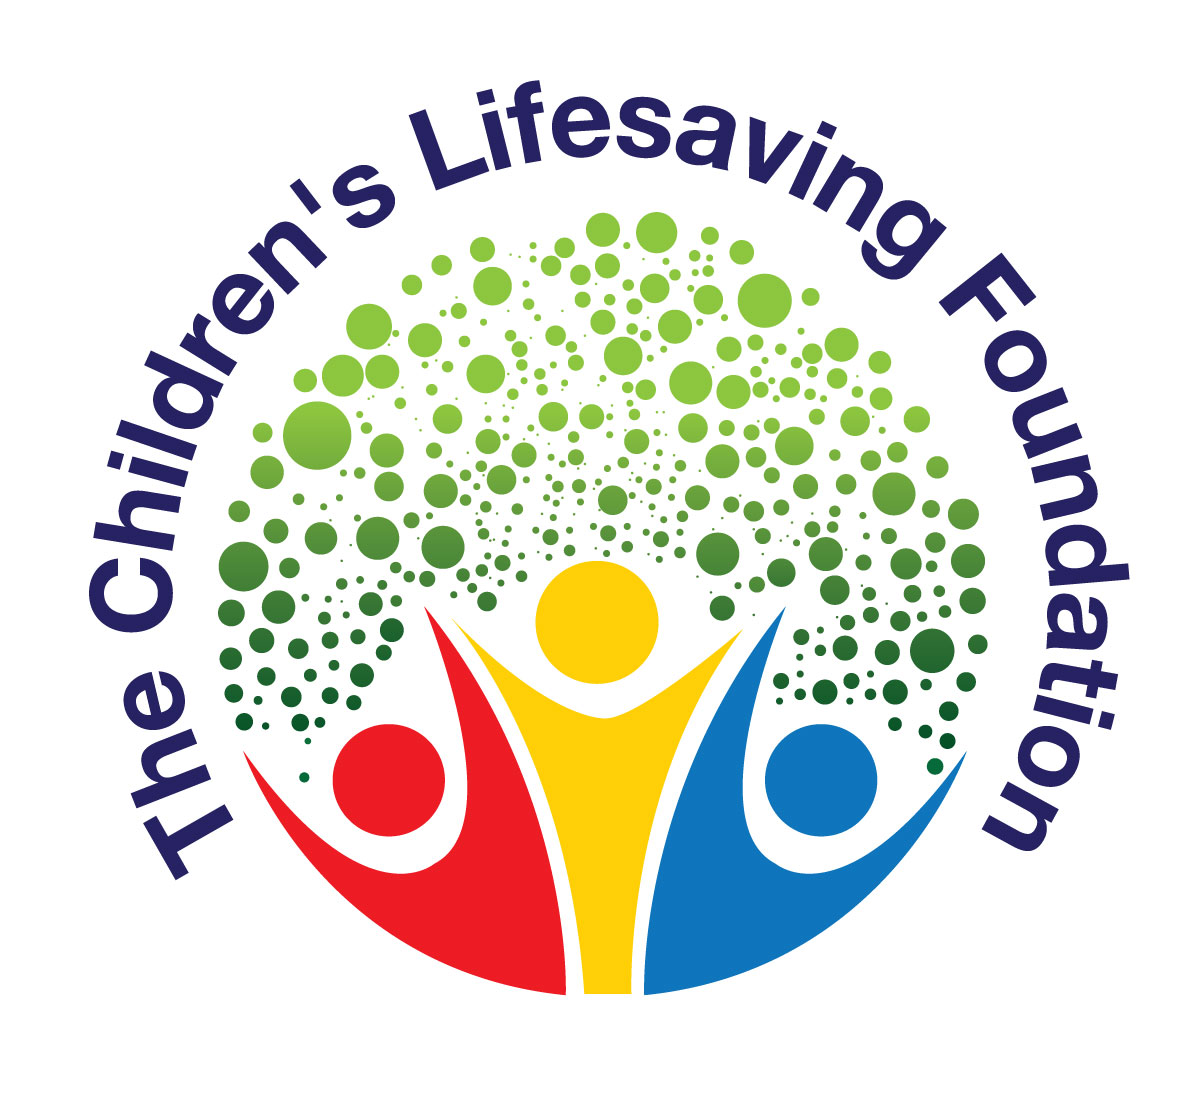 The Children's Lifesaving Foundation